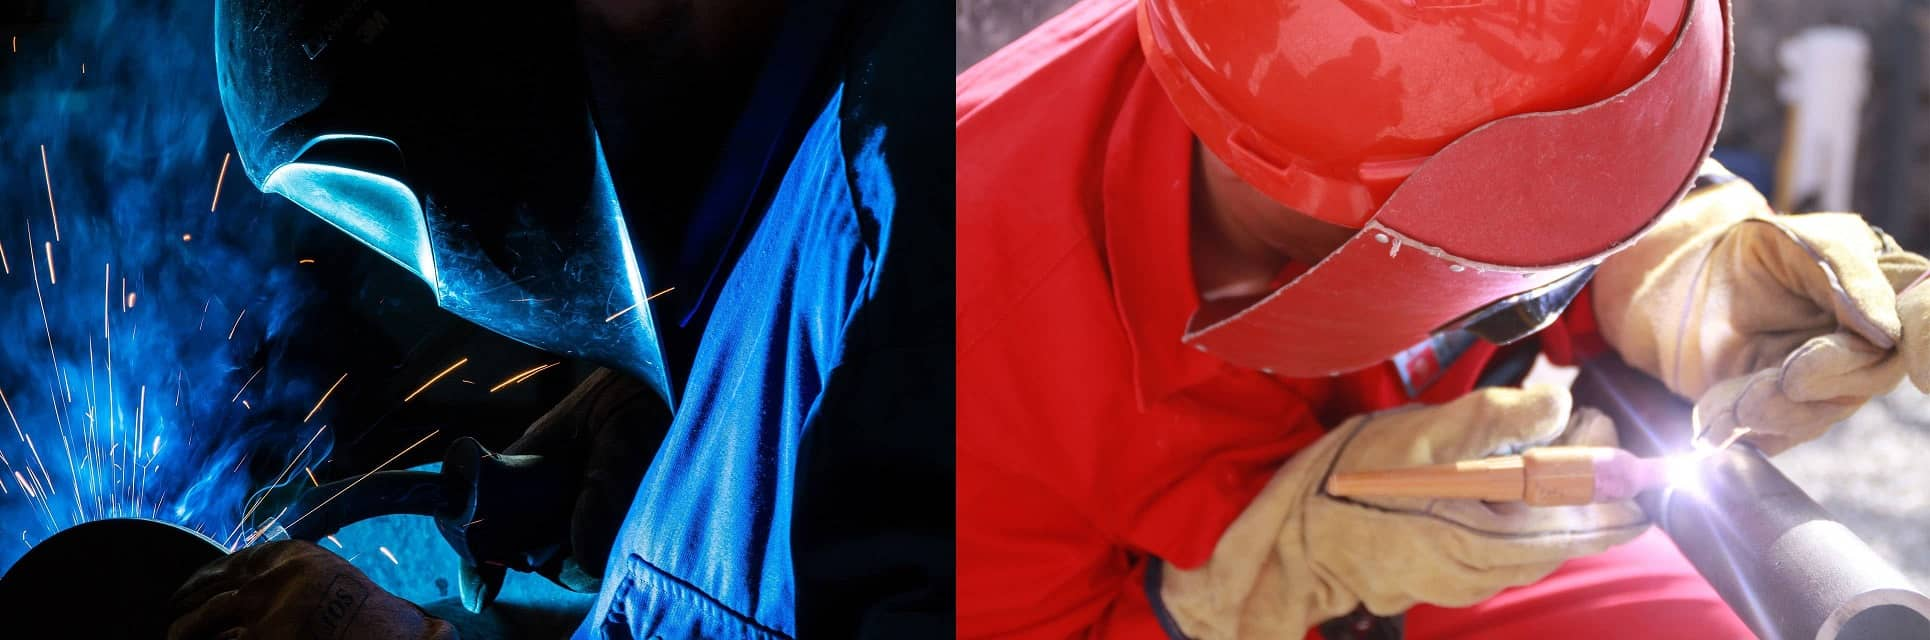 image showing two different welding helmets